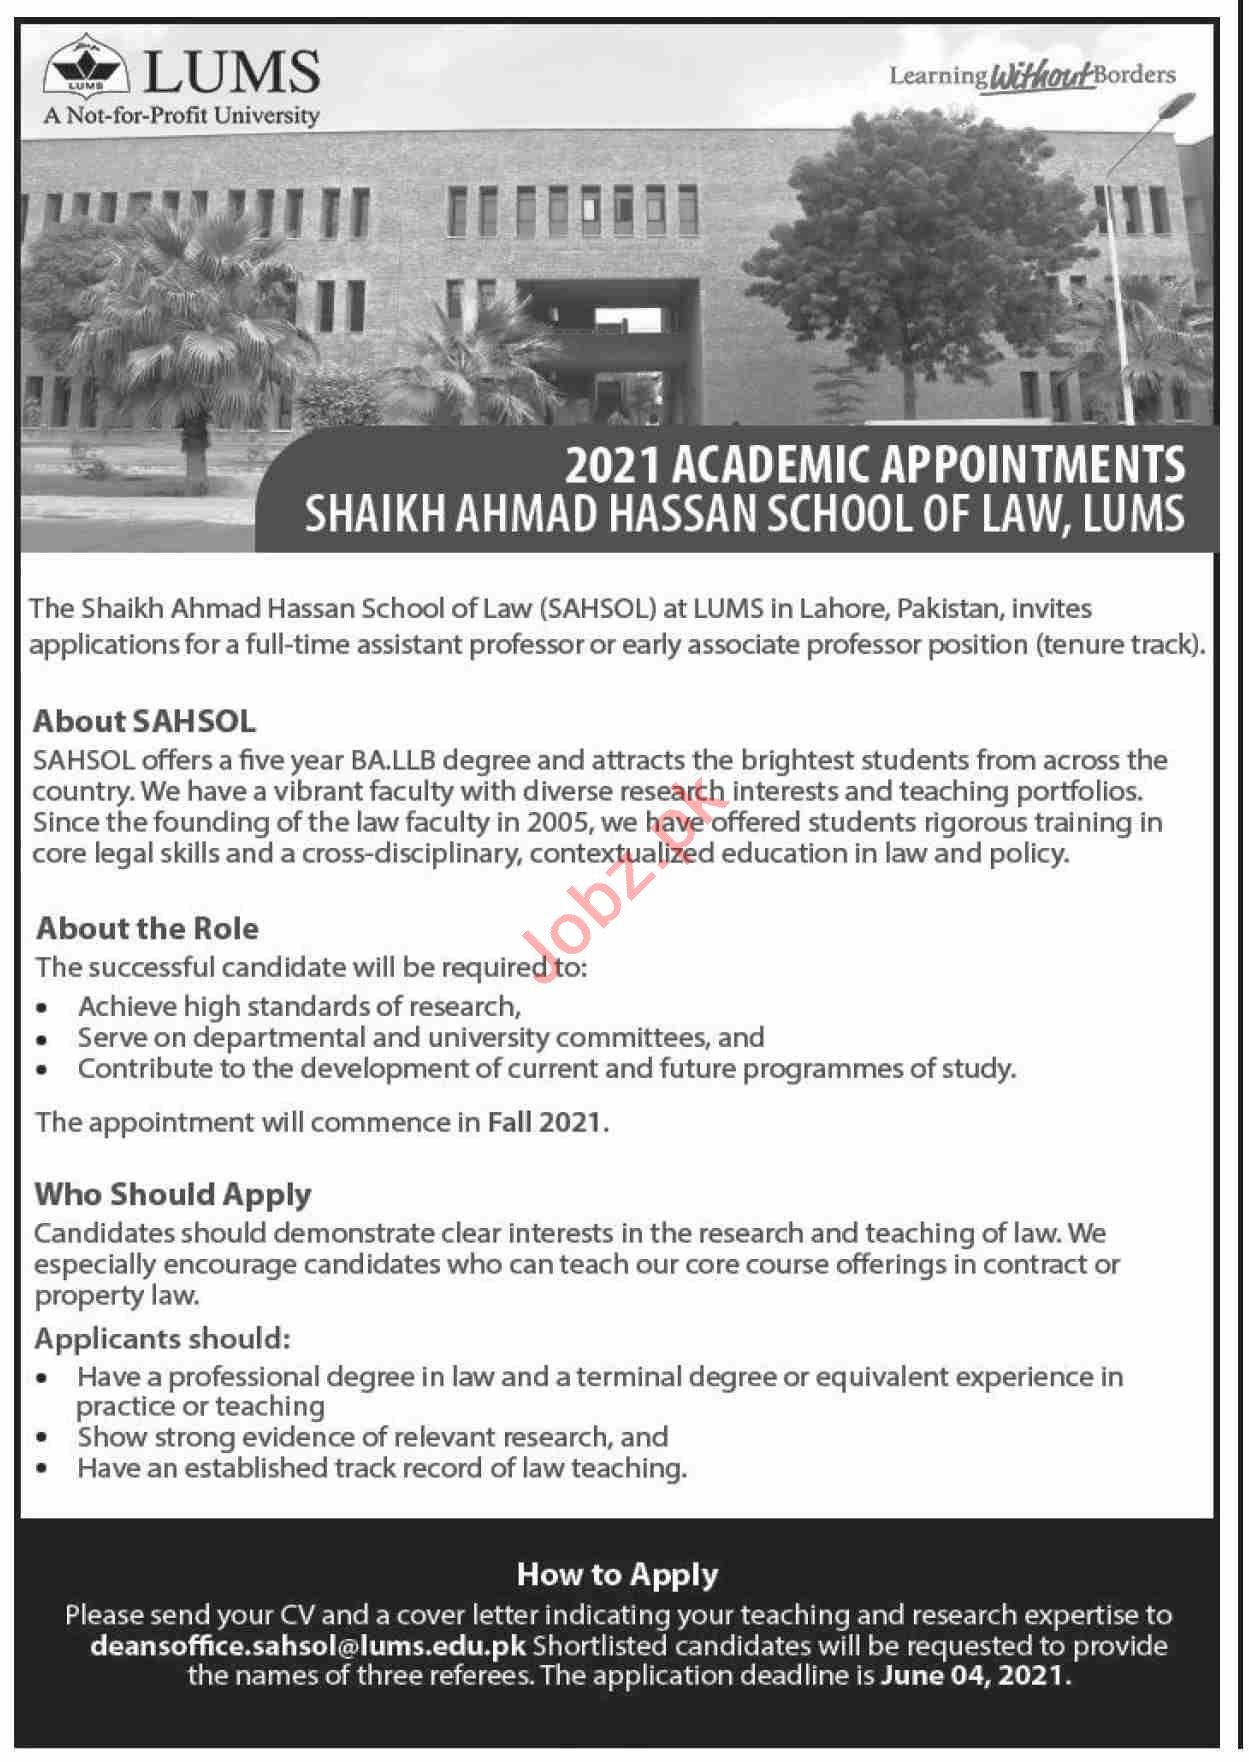 Shaikh Ahmad Hassan School of Law SAHSOL LUMS Jobs 2021